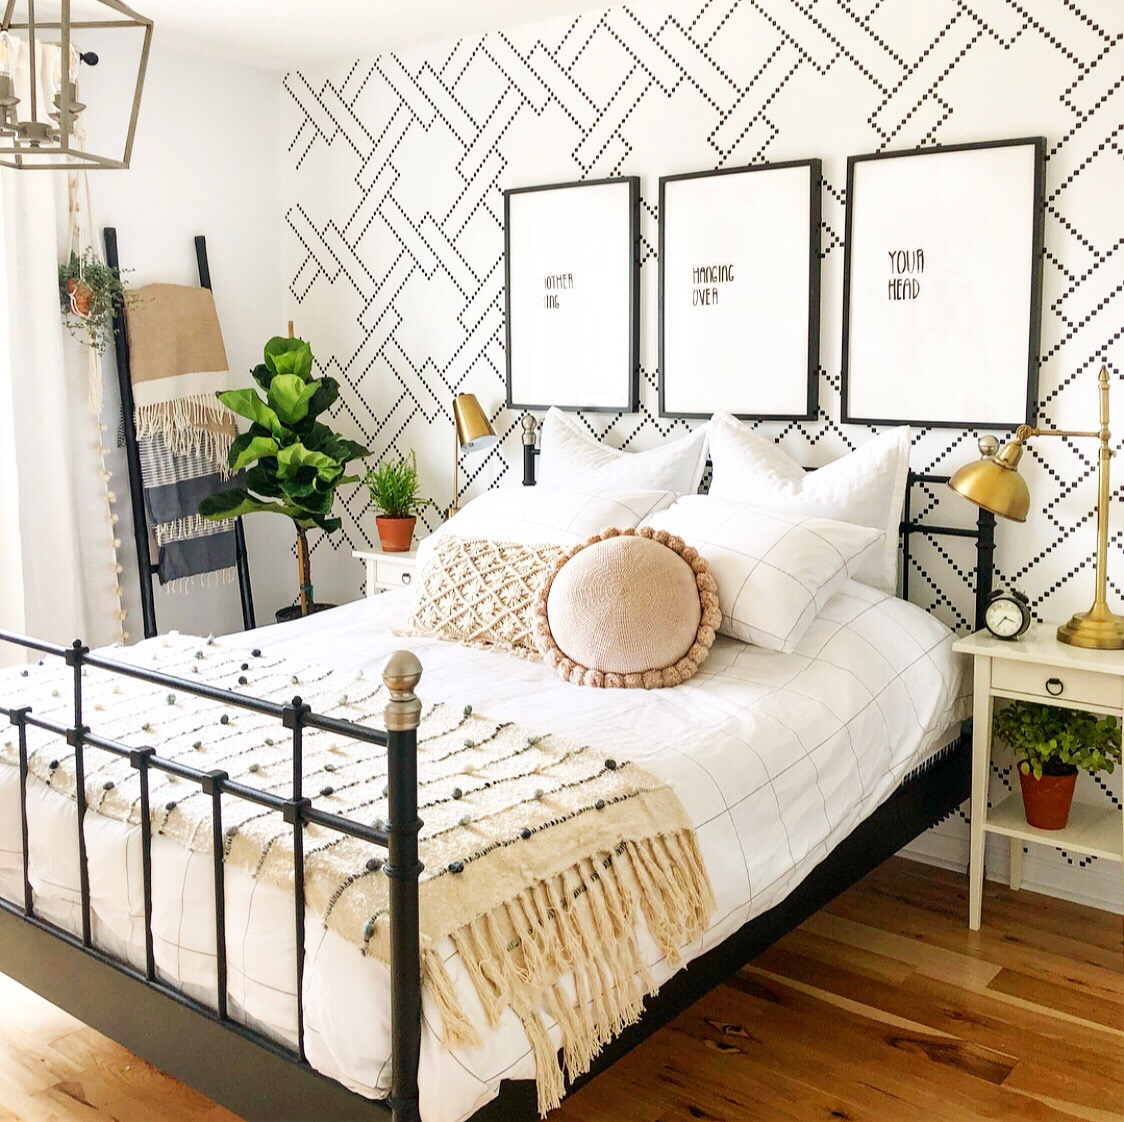 24 Boho Bedroom Ideas How To Use Boho Style In Bedroom Decor Apartment Therapy